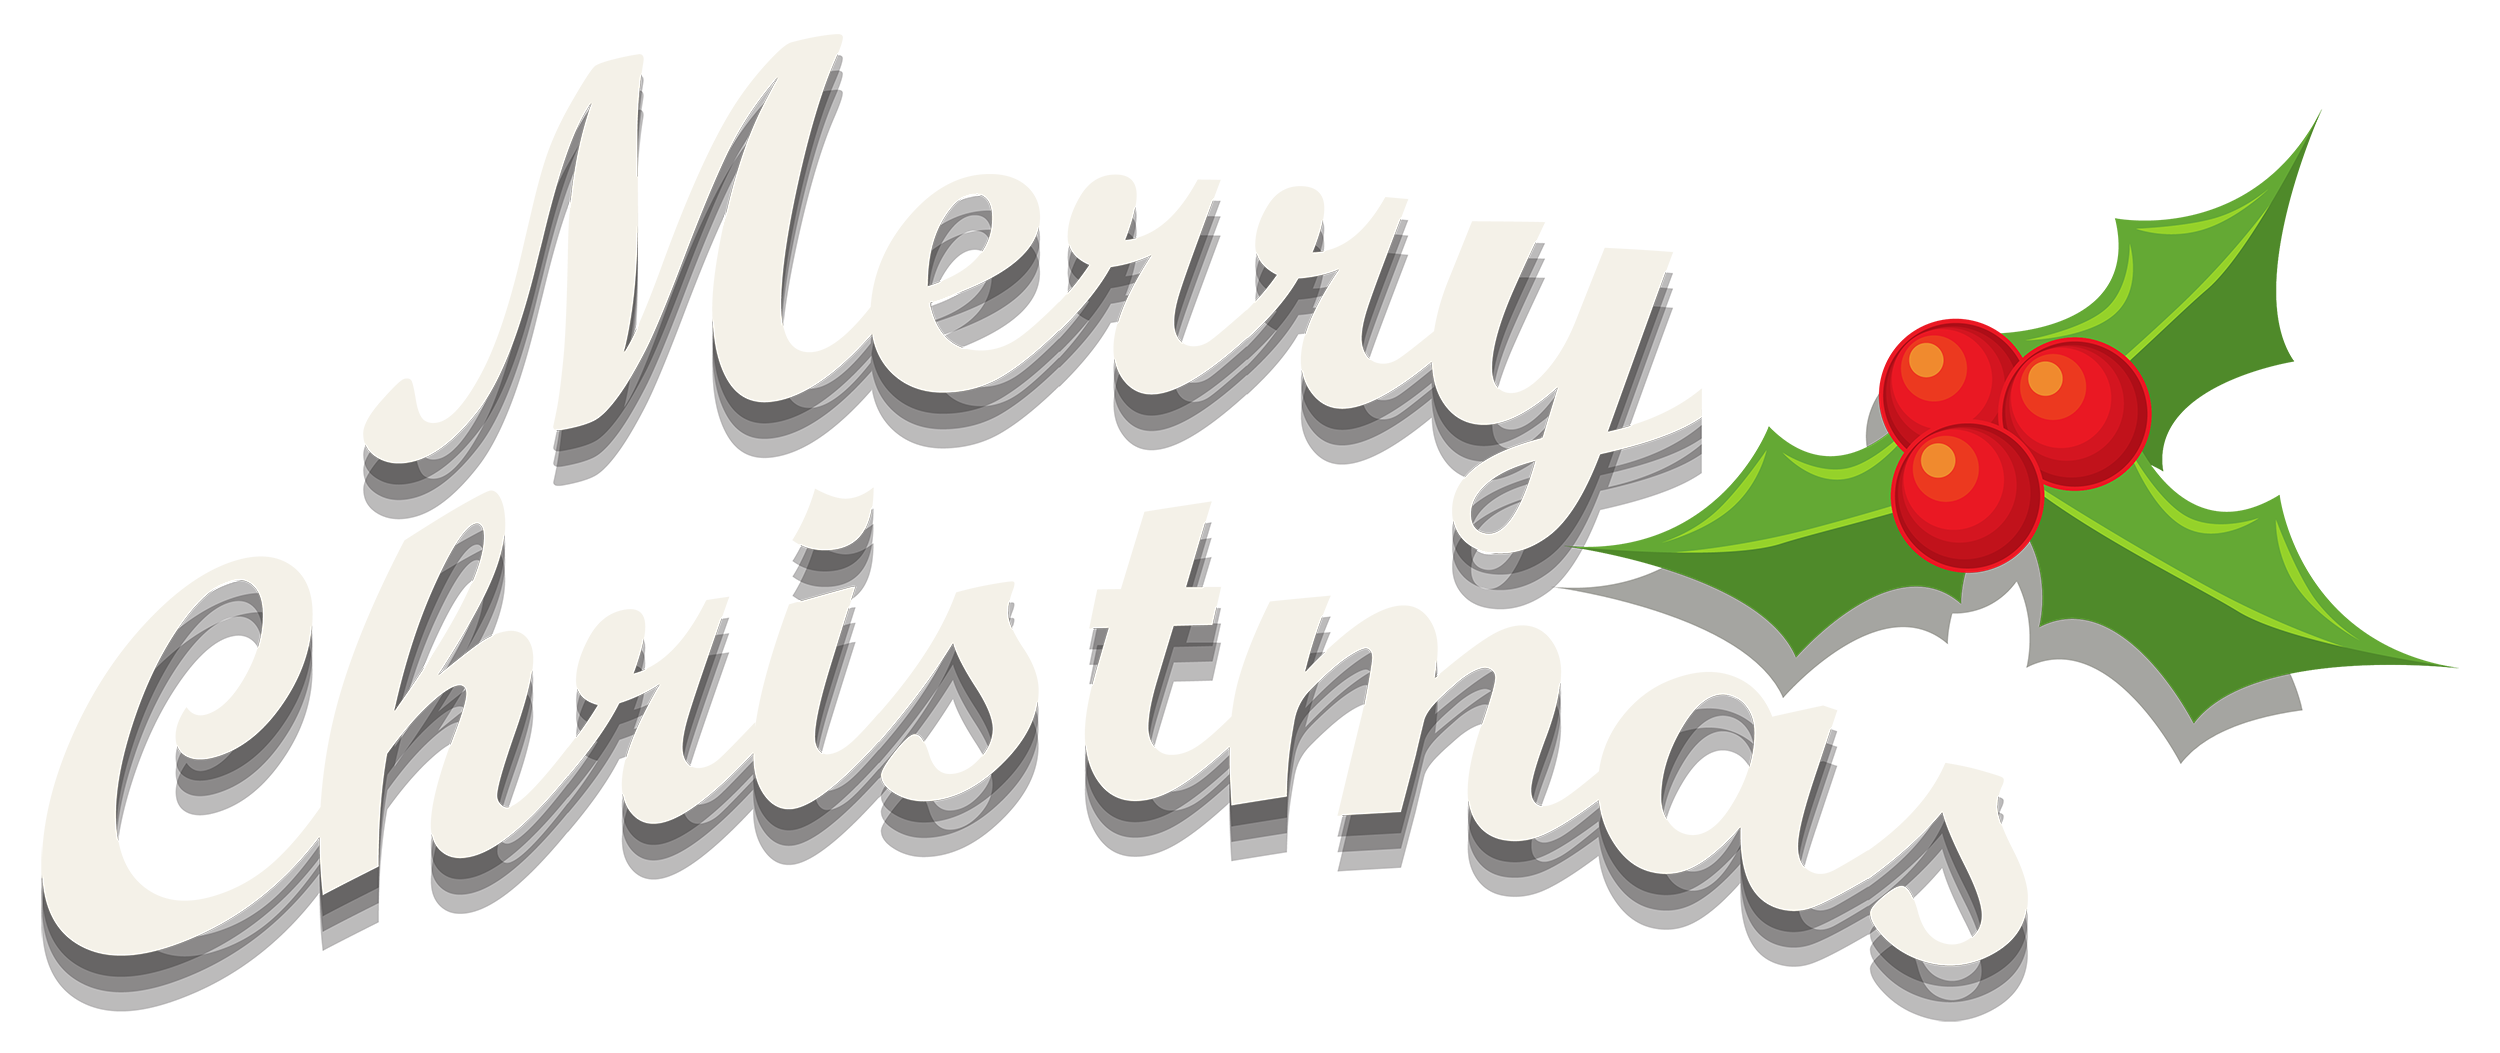 Merry christmas png. Decor with mistletoe clipart